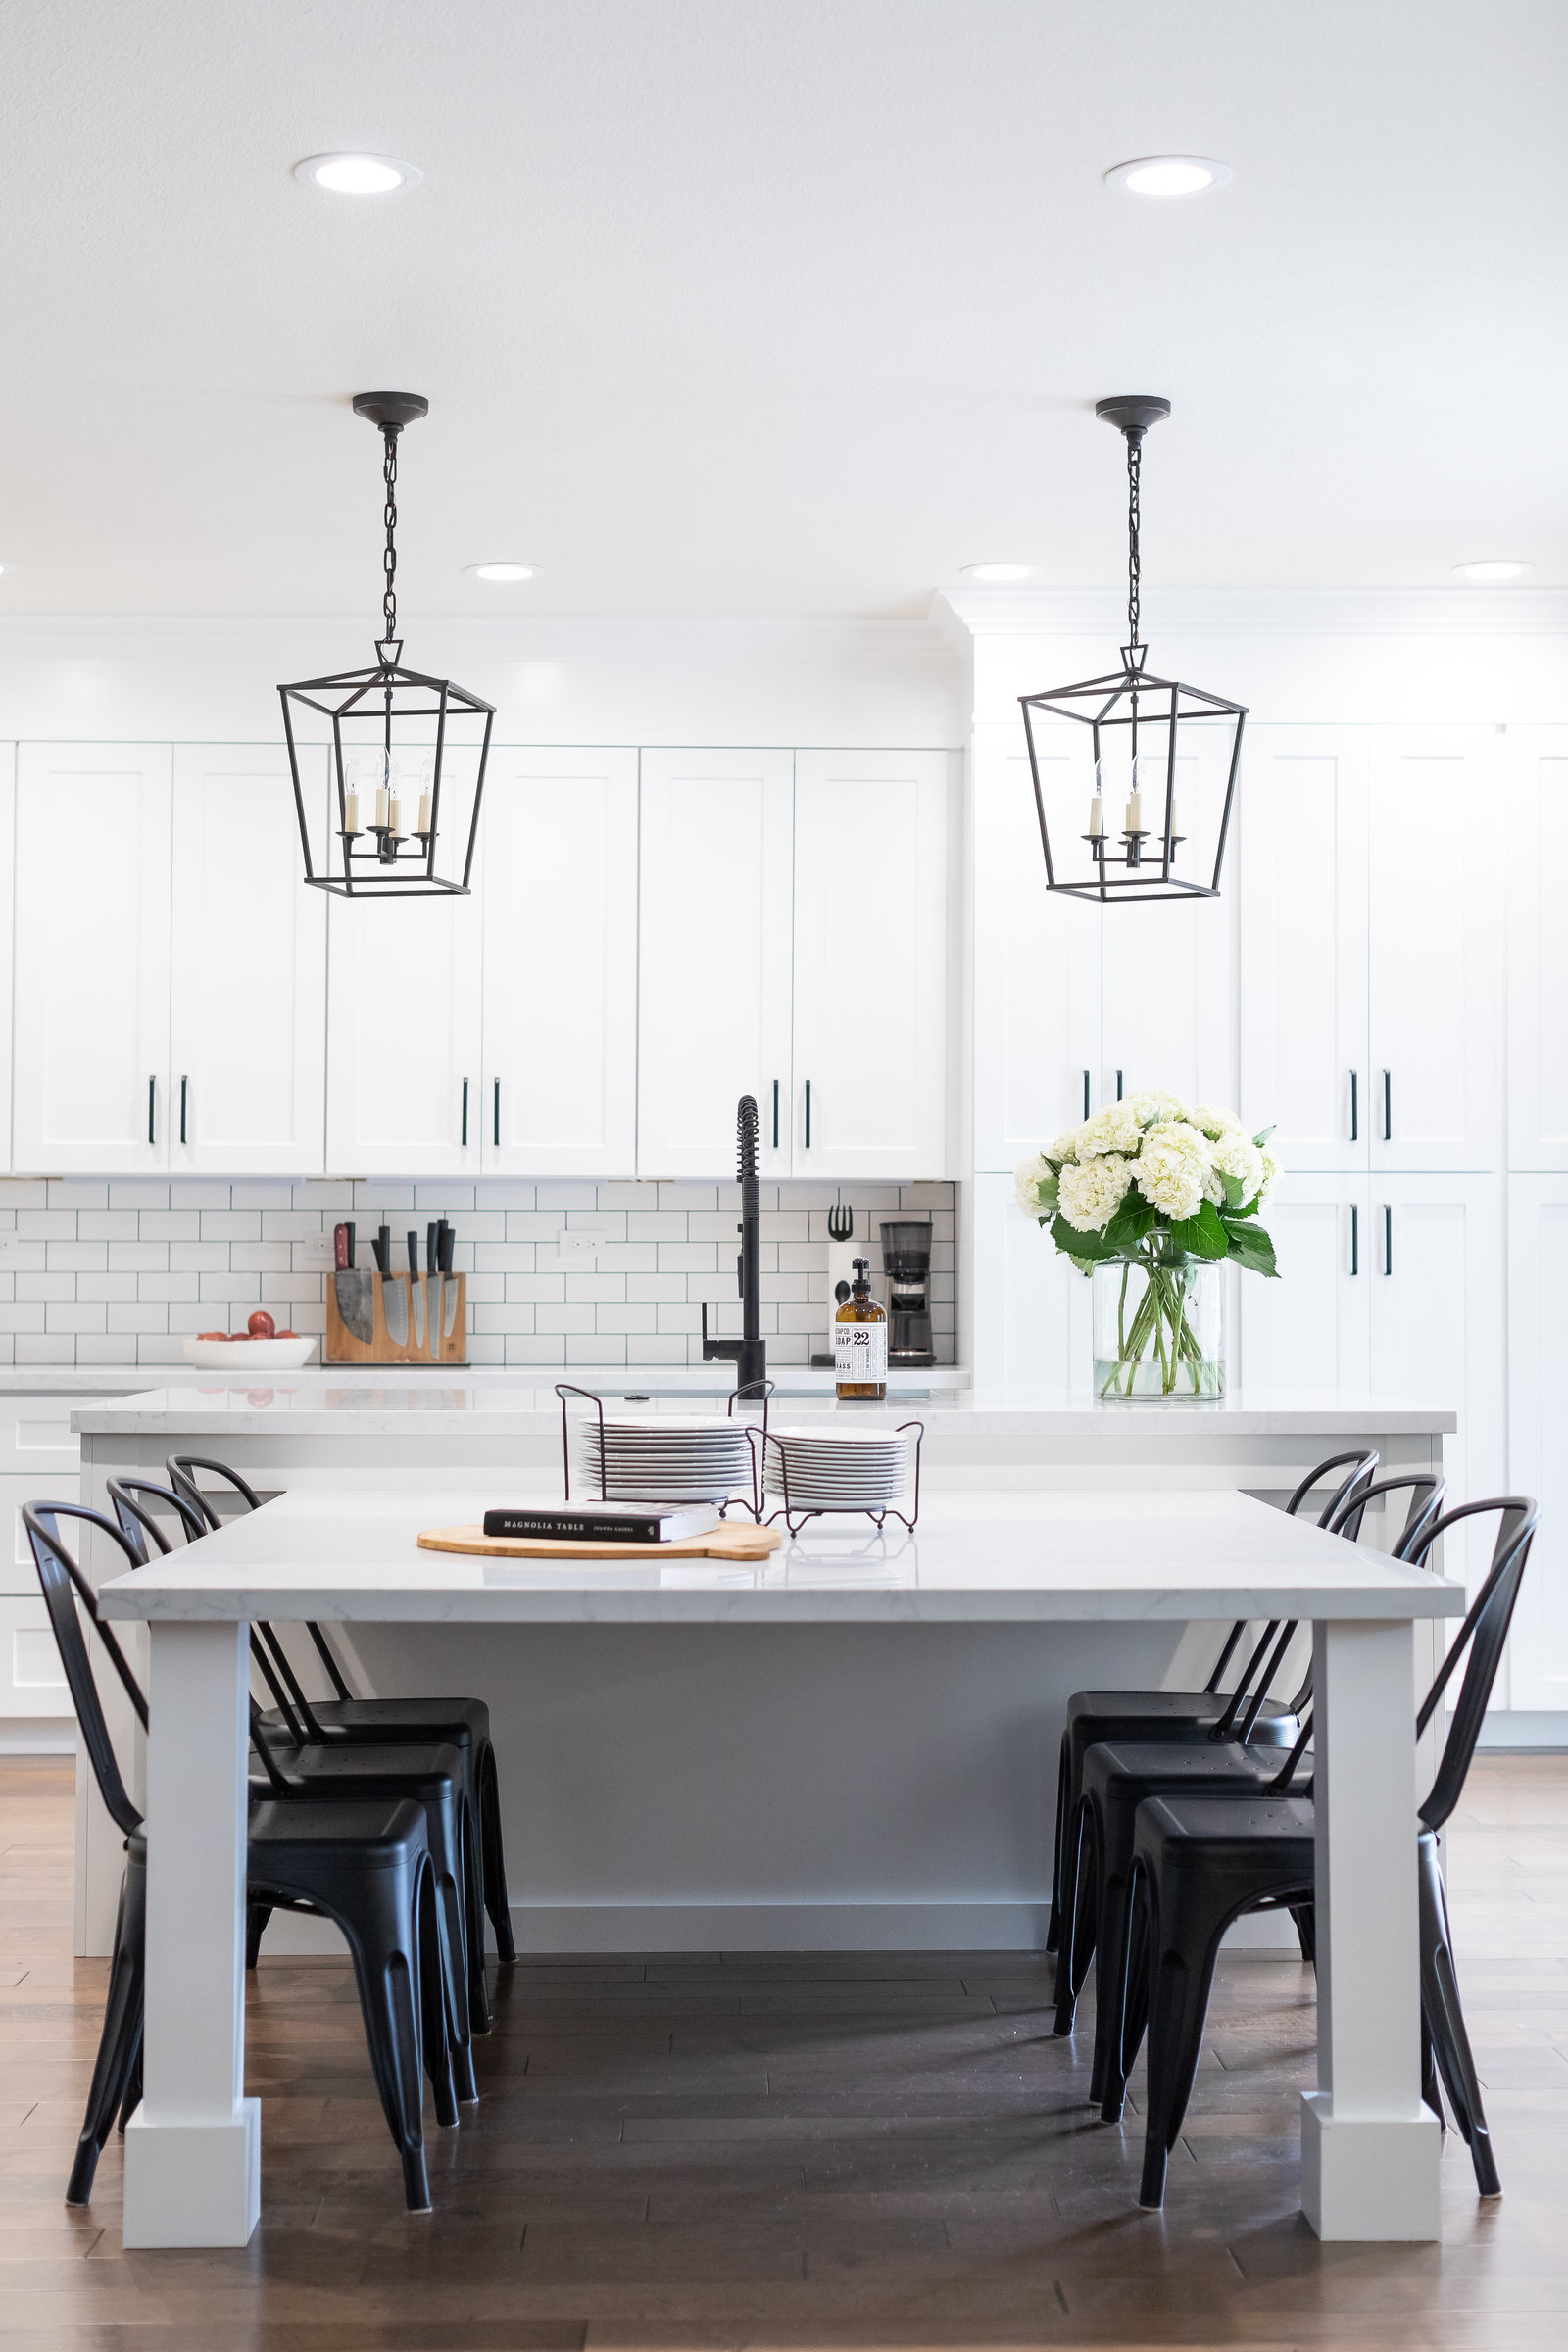 Marlene_Kitchen_Interior_Design_Edits_4-11-1